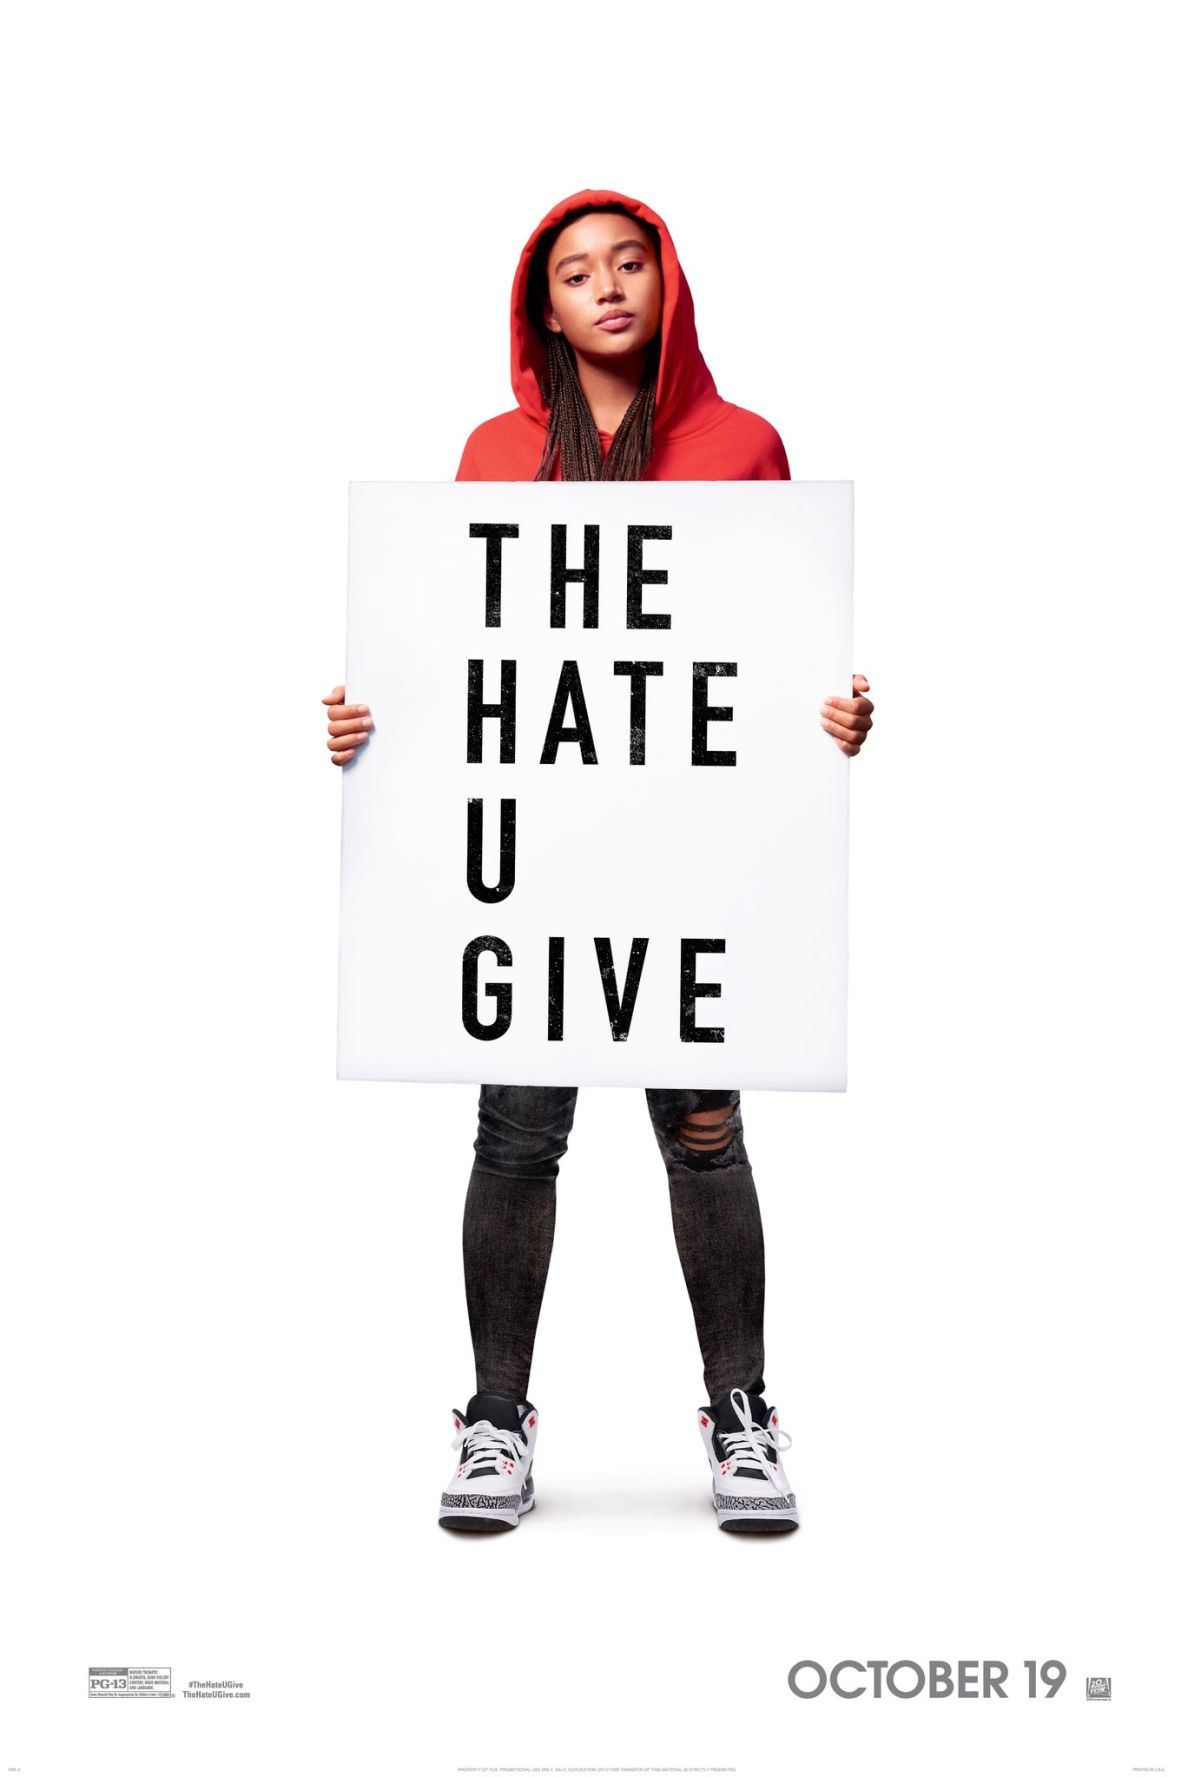 'The Hate U Give' Star-Studded Soundtrack to Feature 2Pac, Kendrick Lamar and Others